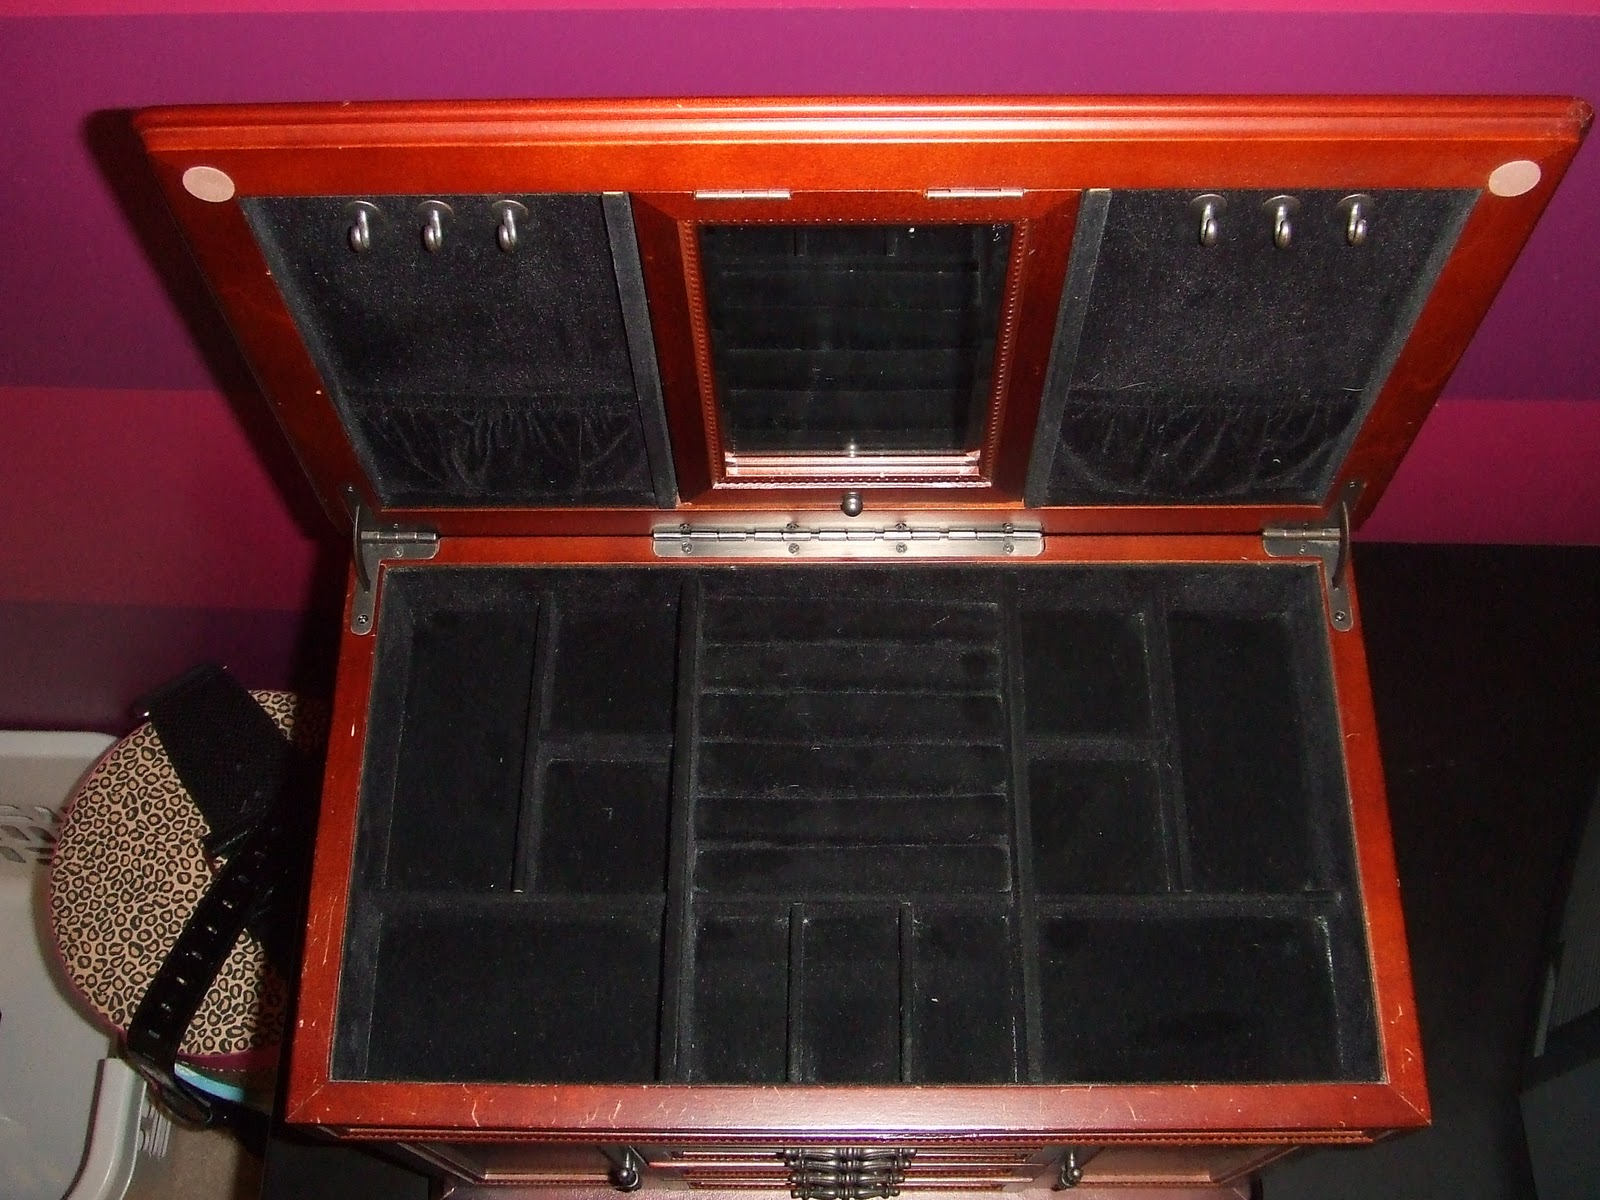 ORGANIZE CLEAN DESIGN How to Clean and Organize a Velvet Jewelry Box